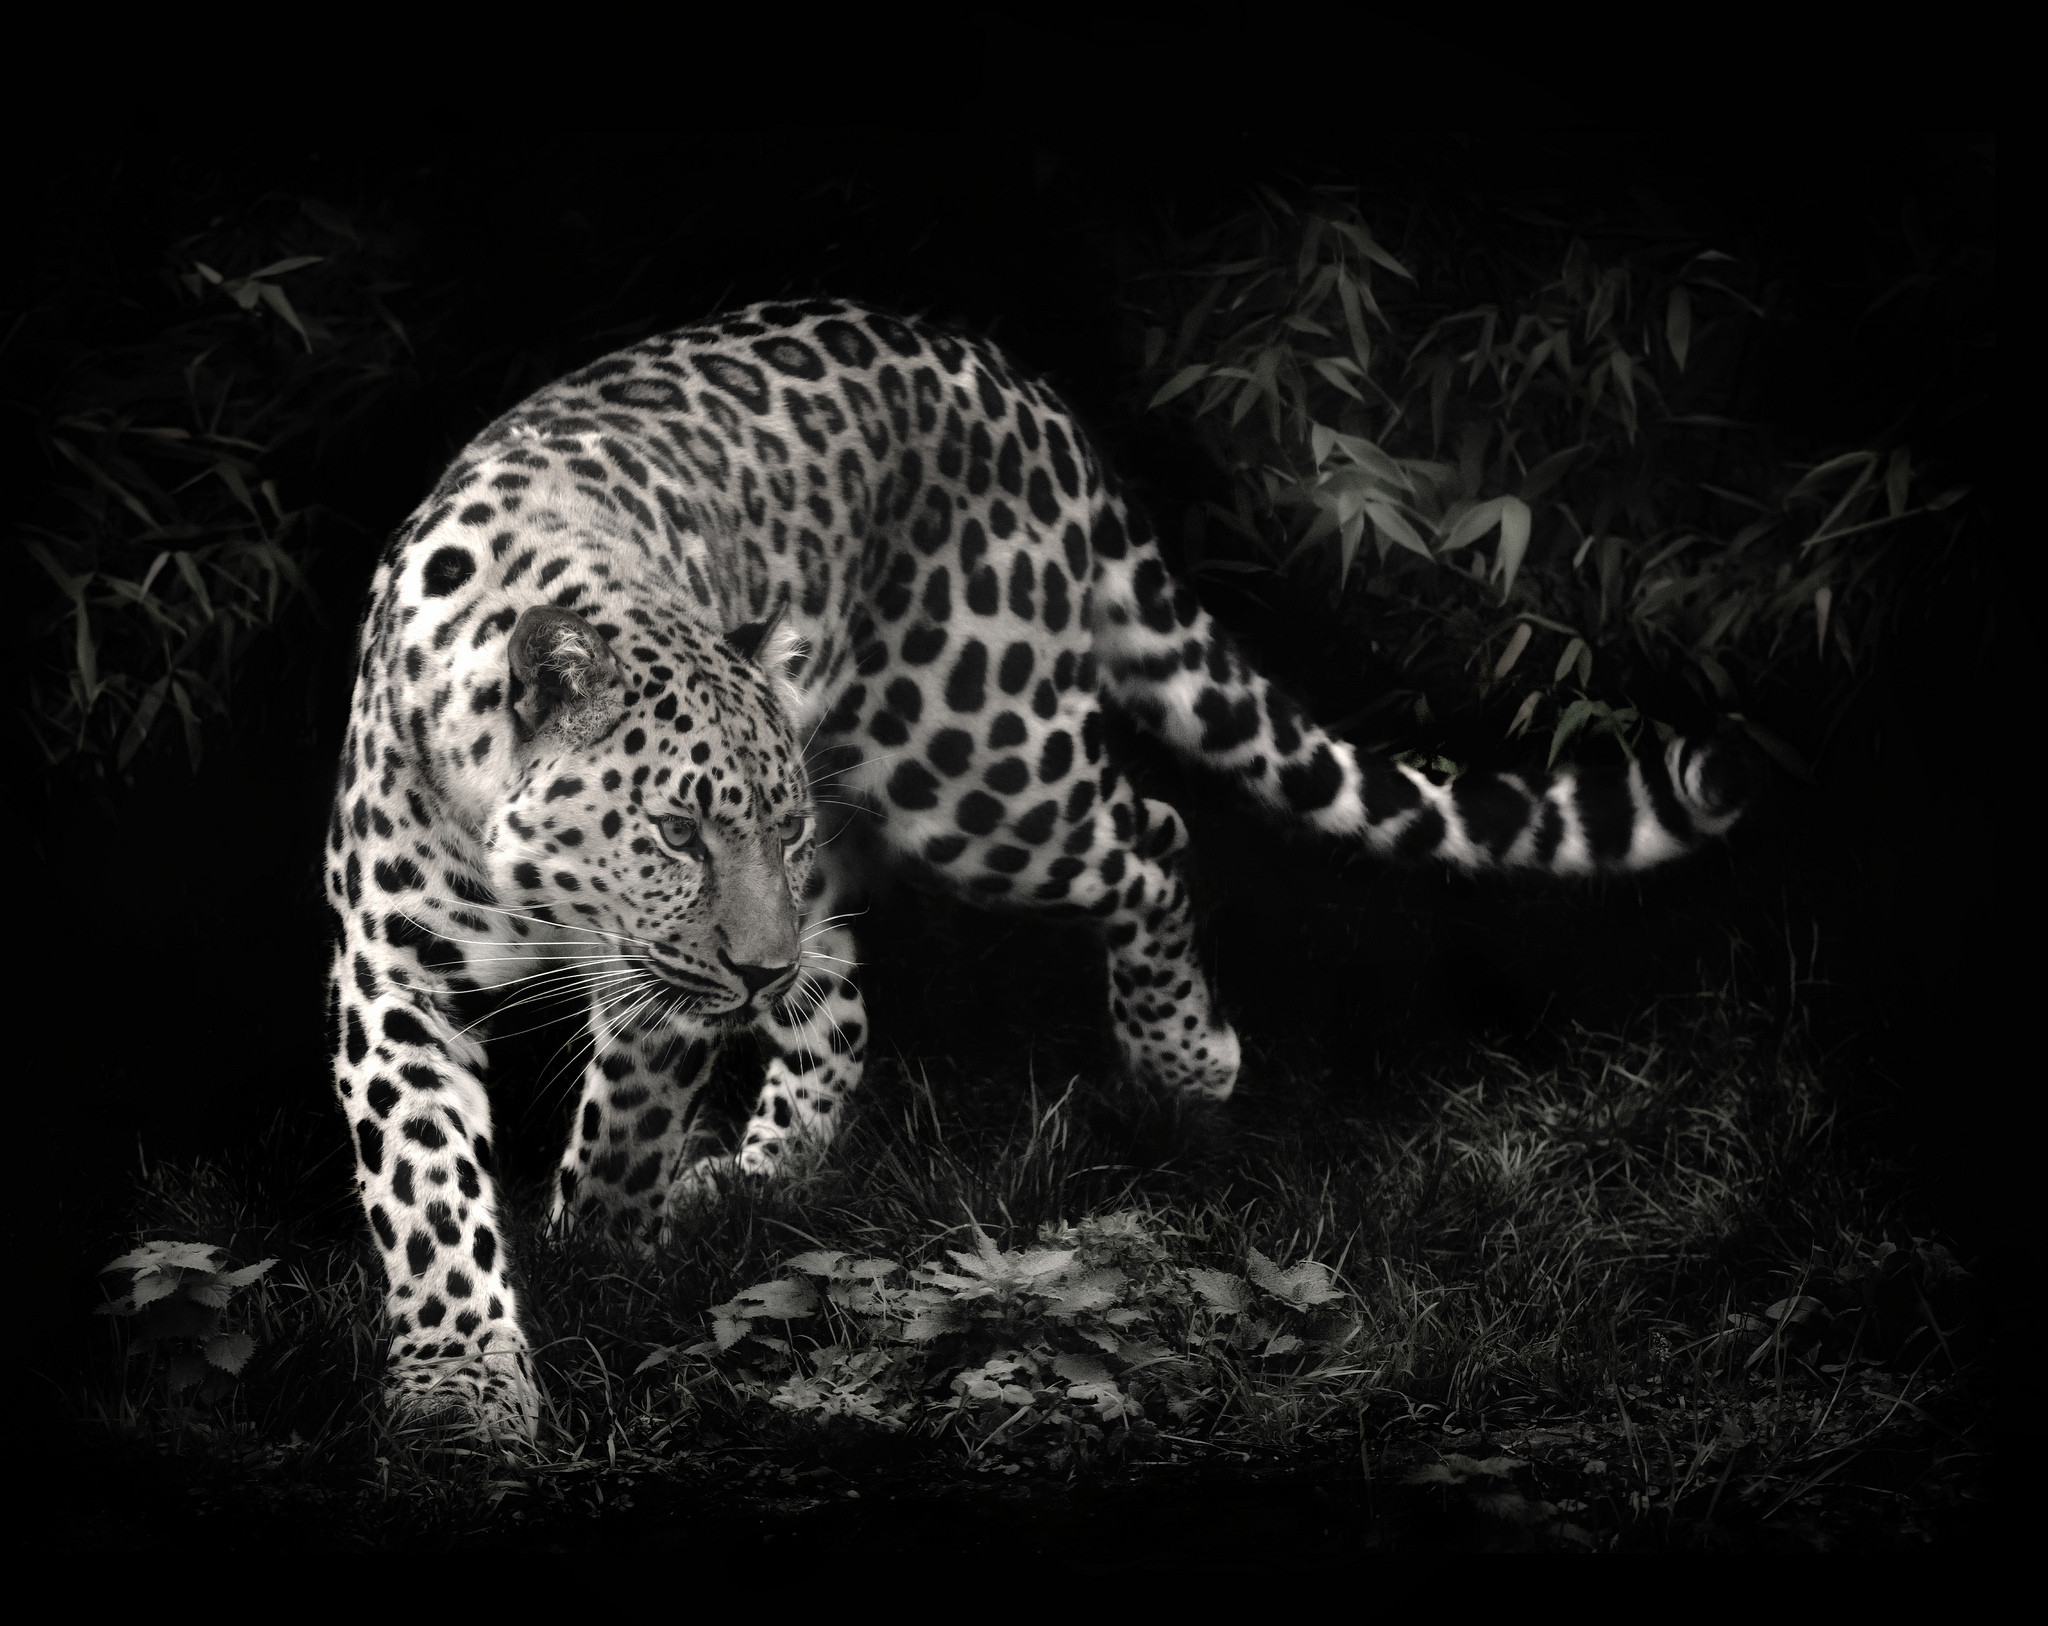 2048x1626 Top Black And White Leopard Wallpaper Hd Wallpapers